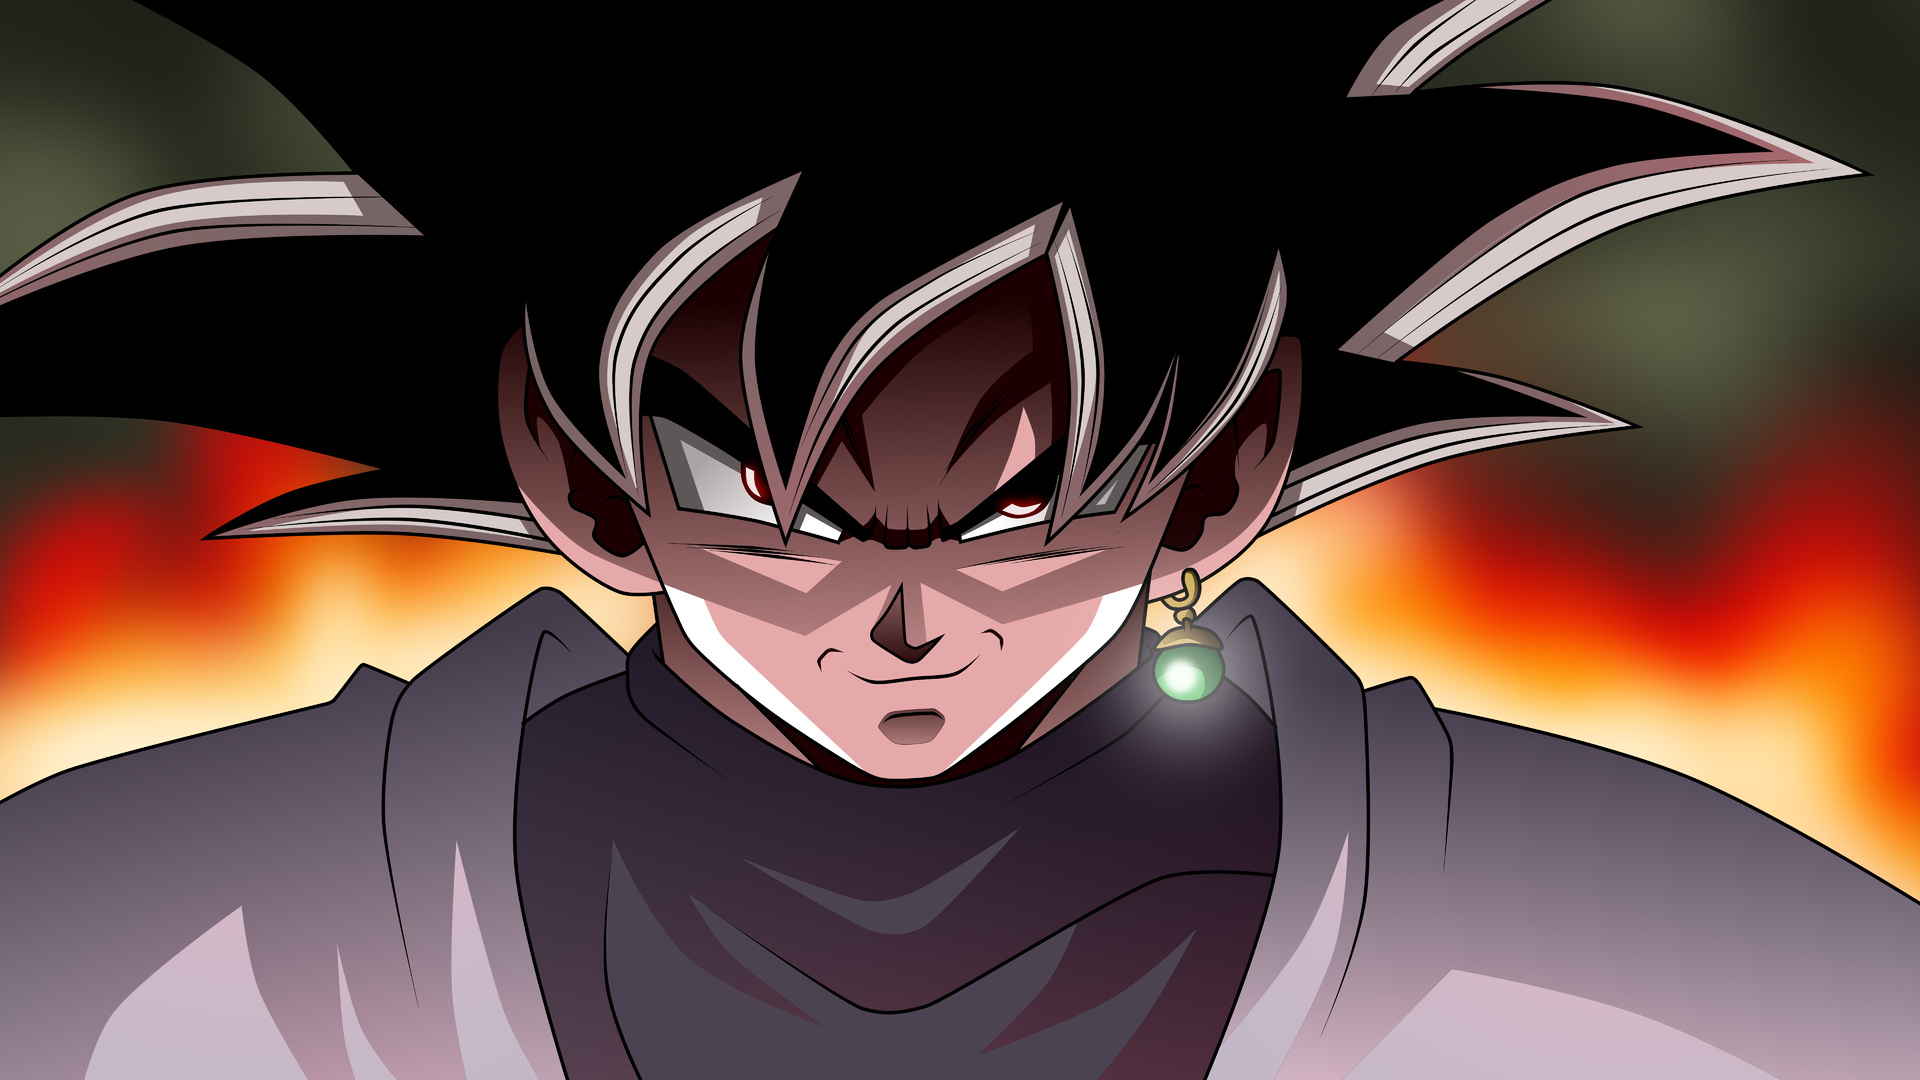 1920x1080 Black Goku Dragon Ball Super 8k Laptop Full Hd 1080p Hd 4k Wallpapers Images Backgrounds Photos And Pictures